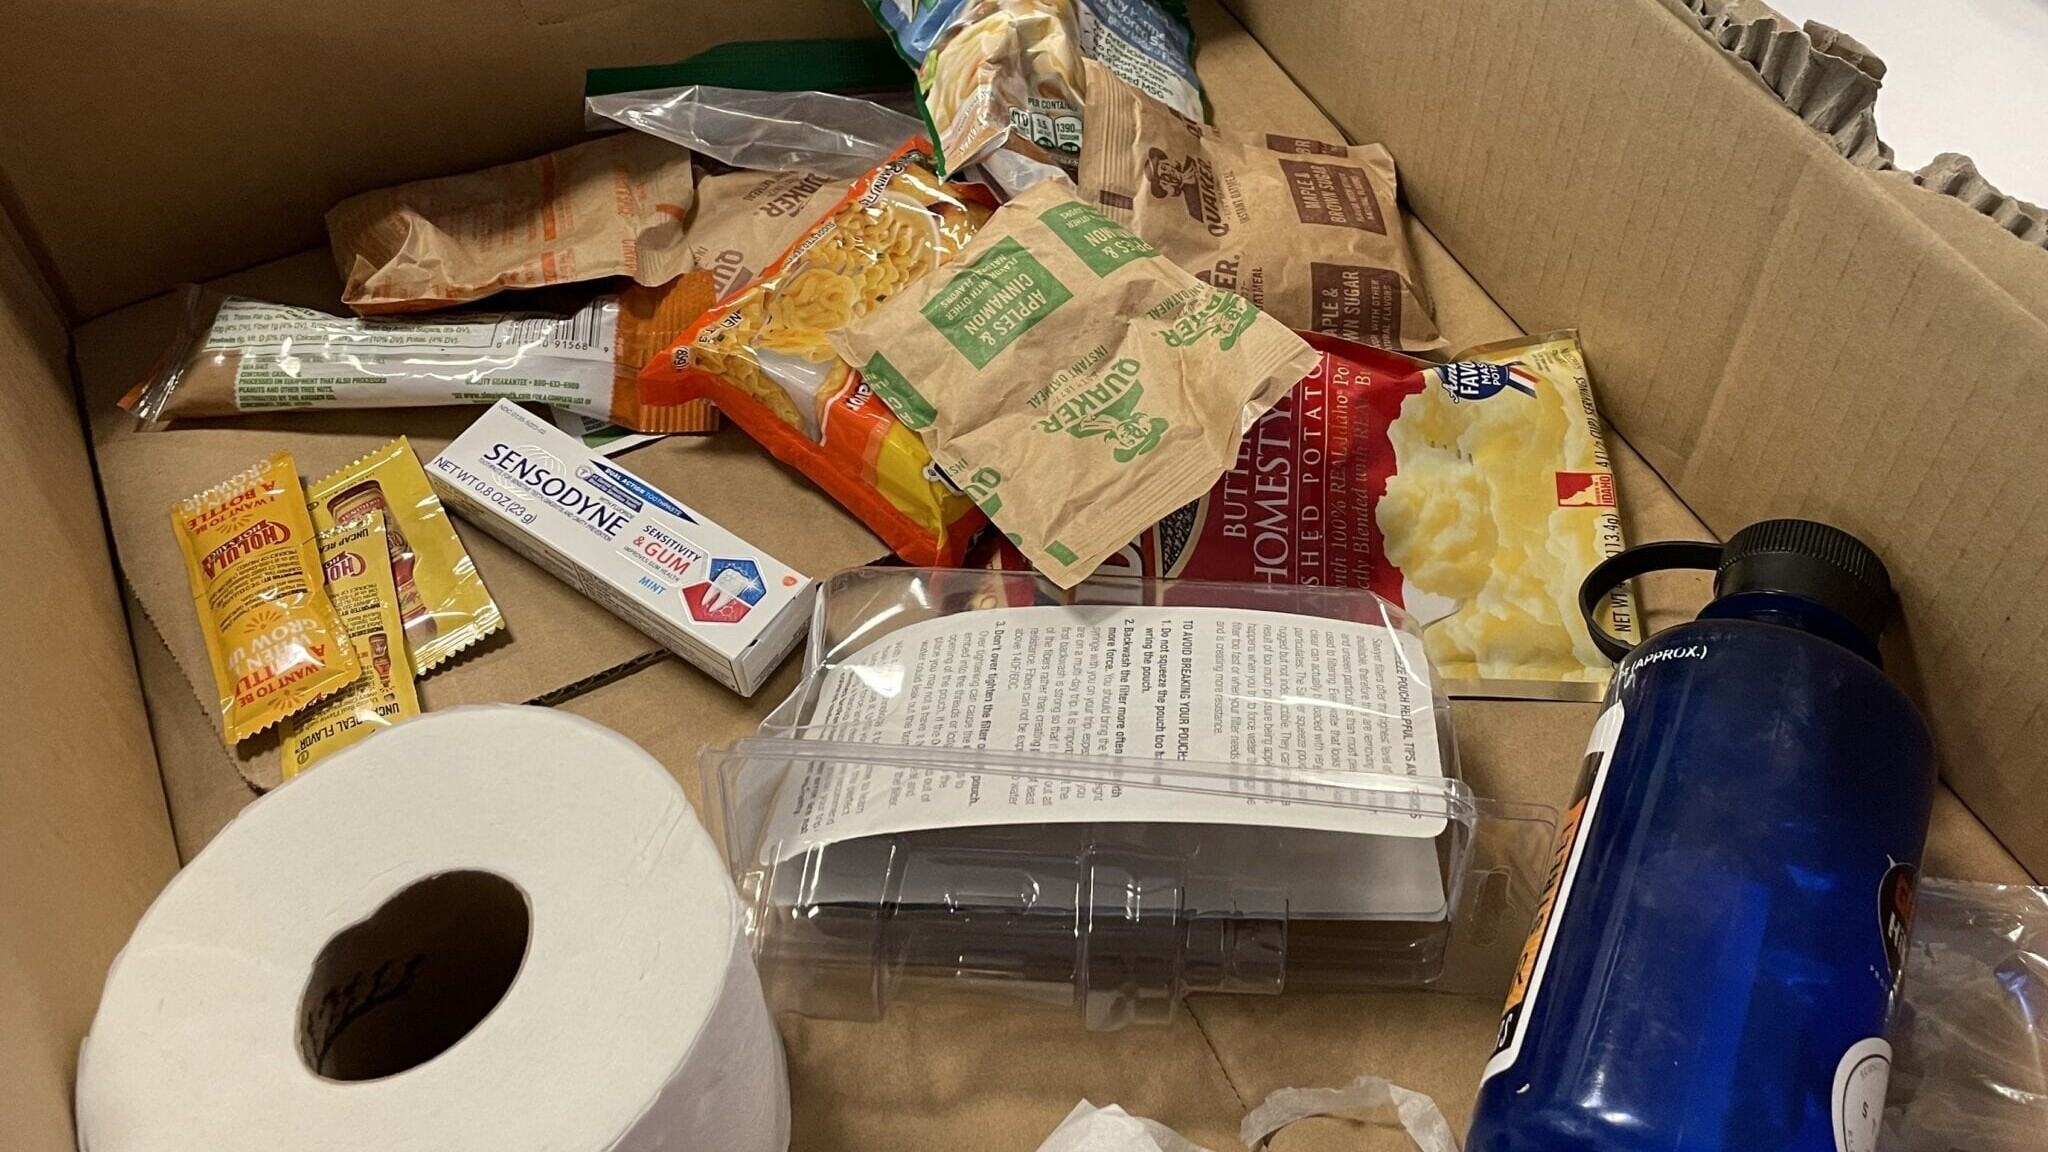 Miscellaneous items in a hiker box